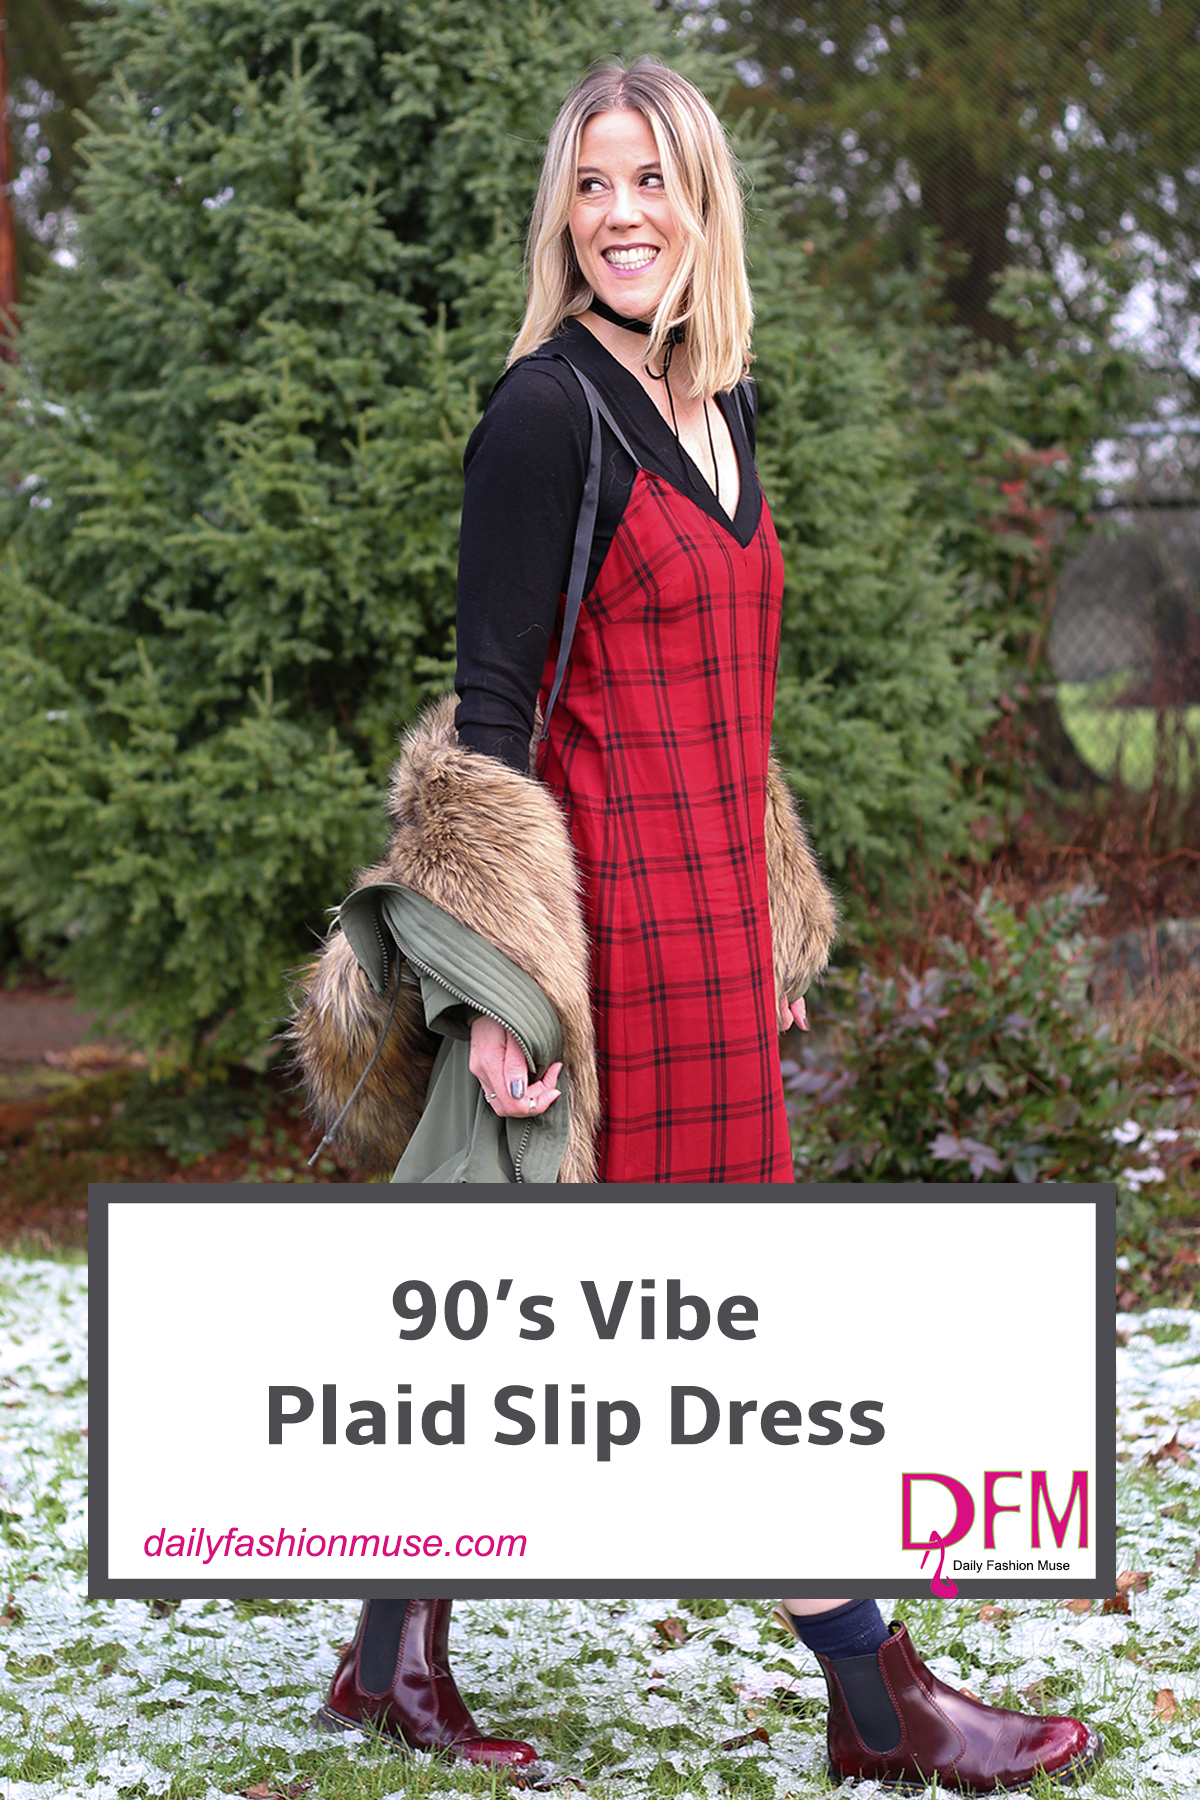 The 90's plaid slip dress and Dr. Martens trend has become one of the slickest ways to repurpose those lightweight summer dresses. Click to read.